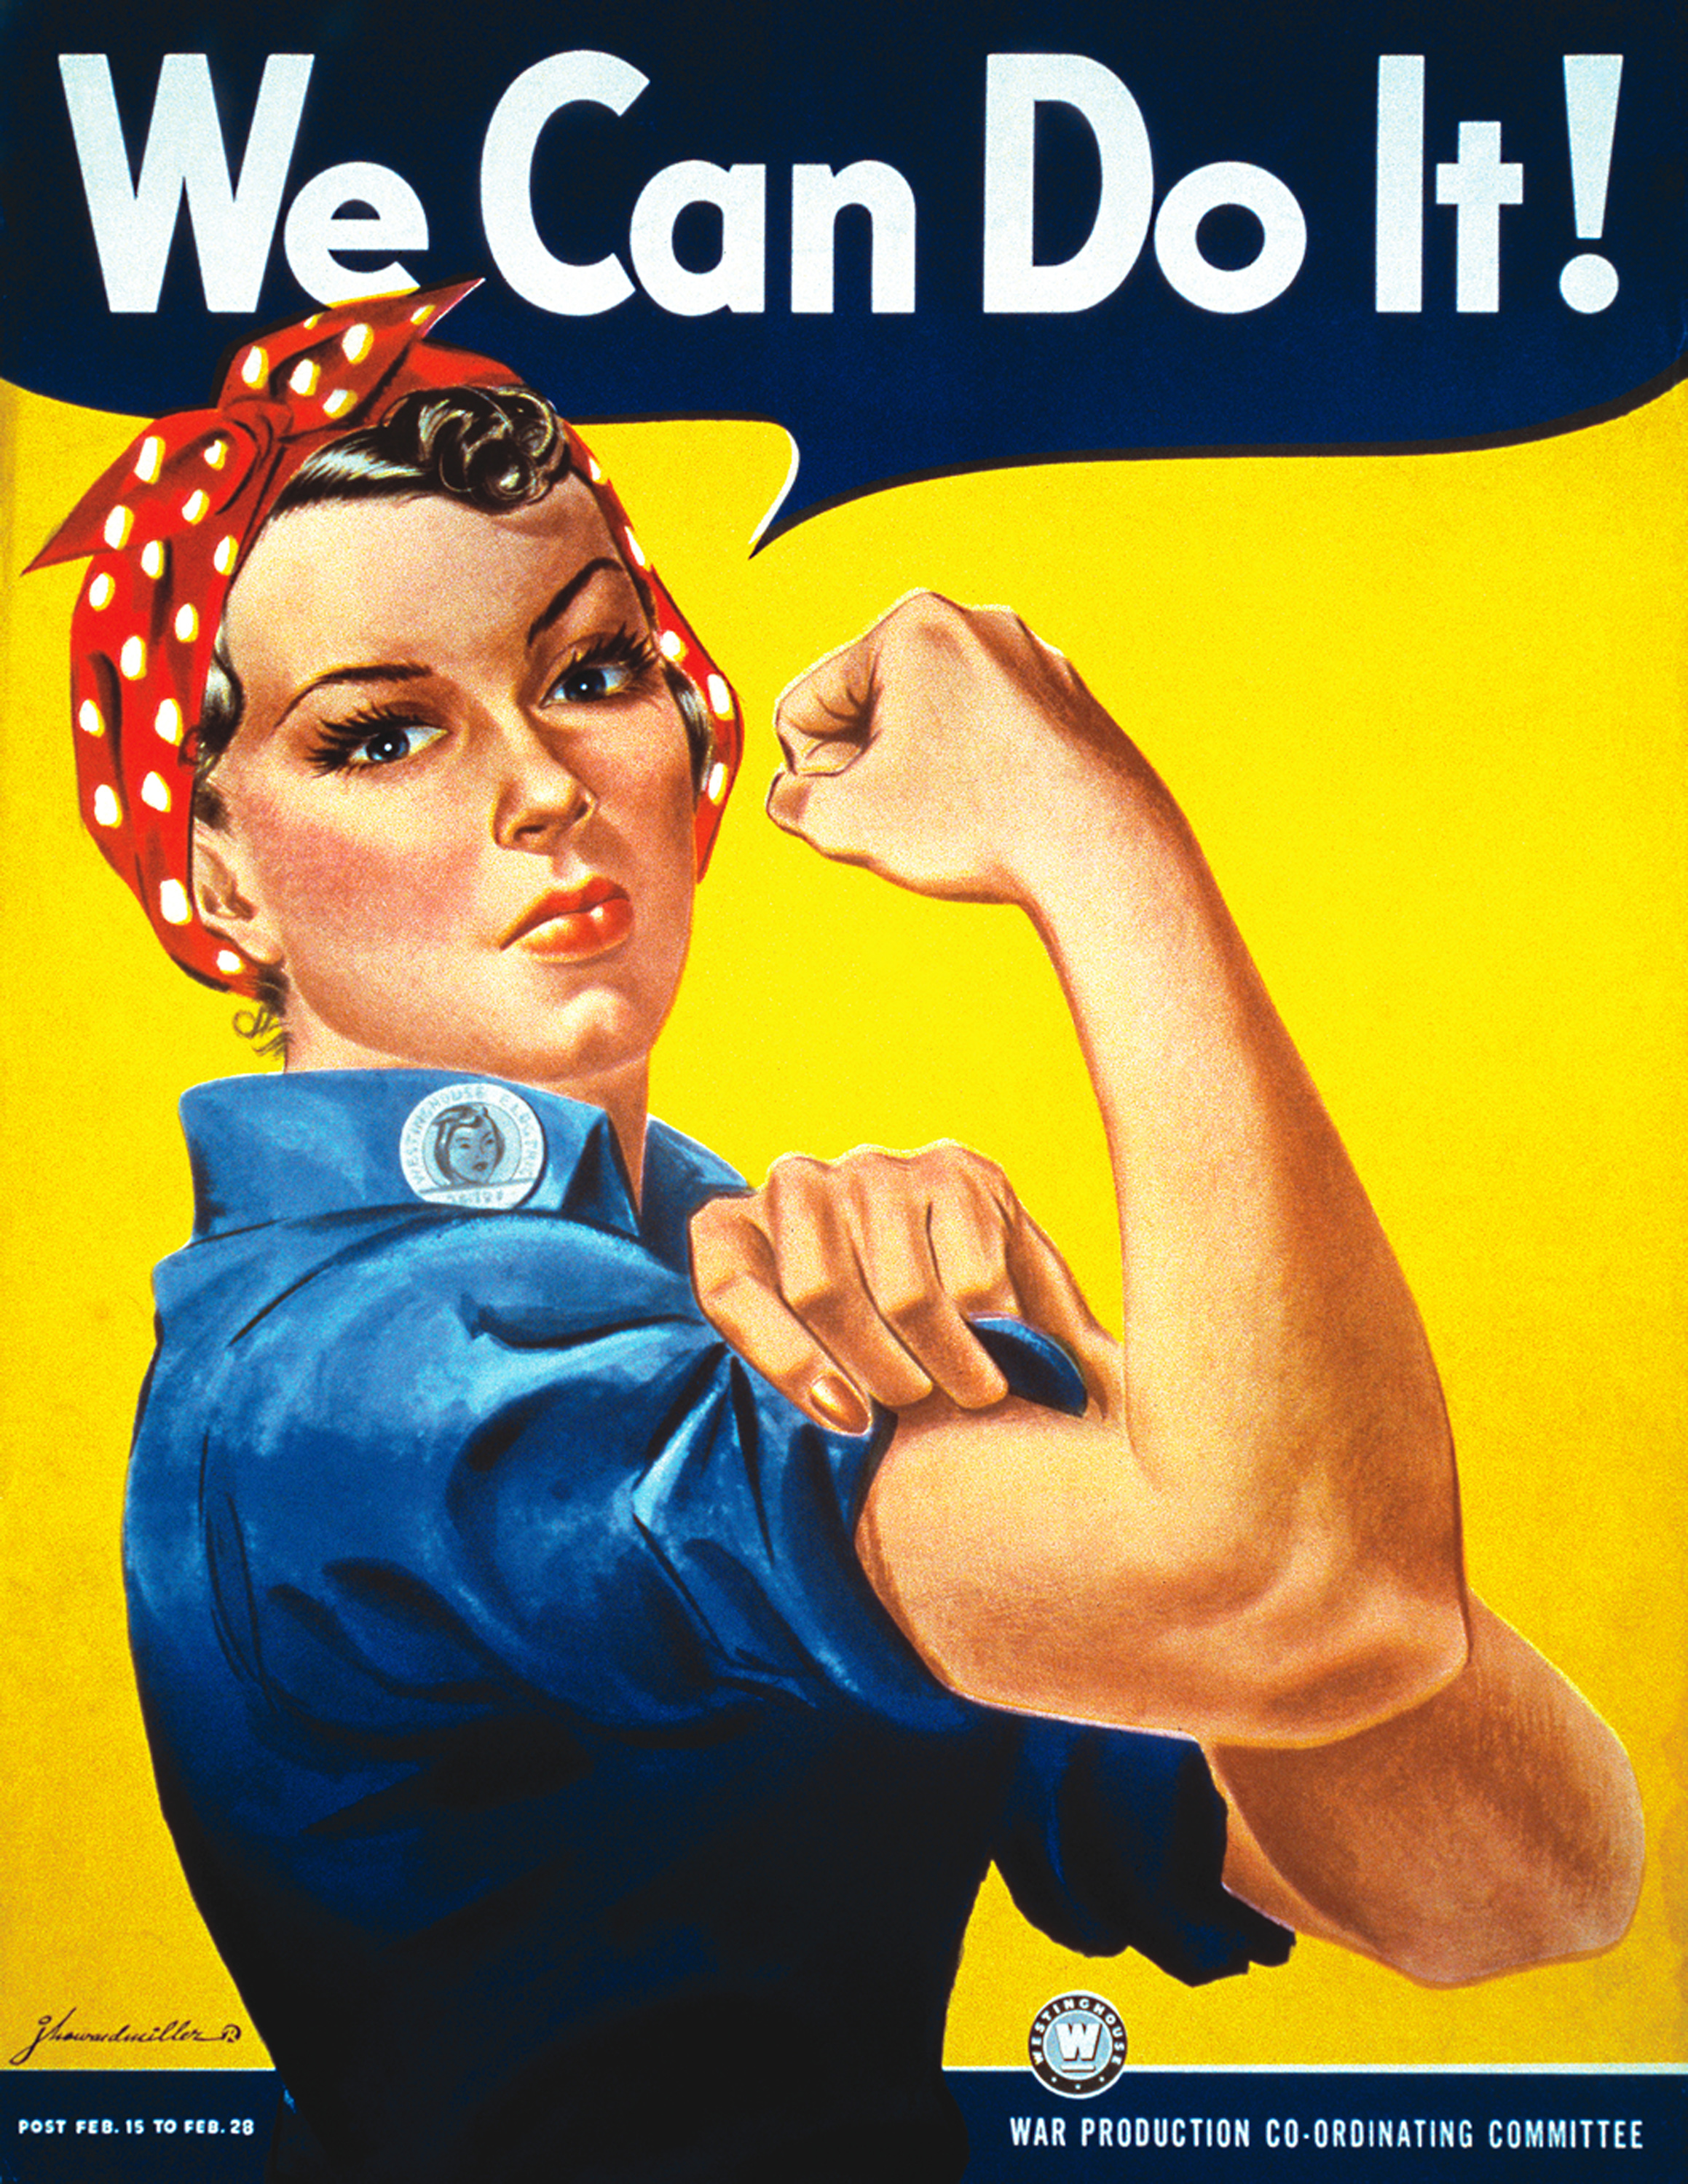 We-Can-Do-It-Rosie-the-Riveter-Poster-Vintage-Poster.jpg